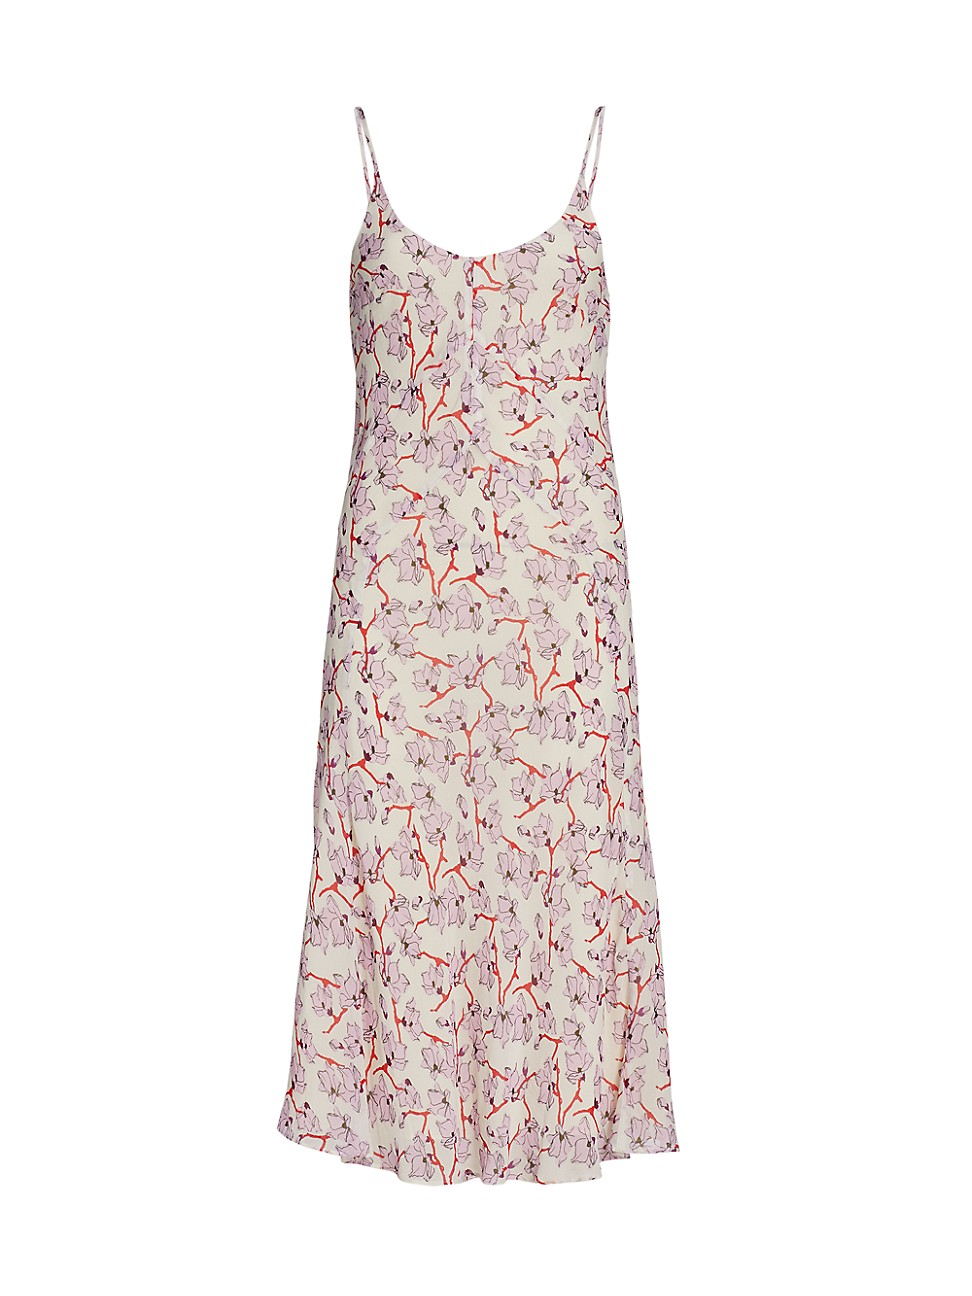 Rag & Bone WOMEN'S EVA FLORAL MIDI SLIP DRESS